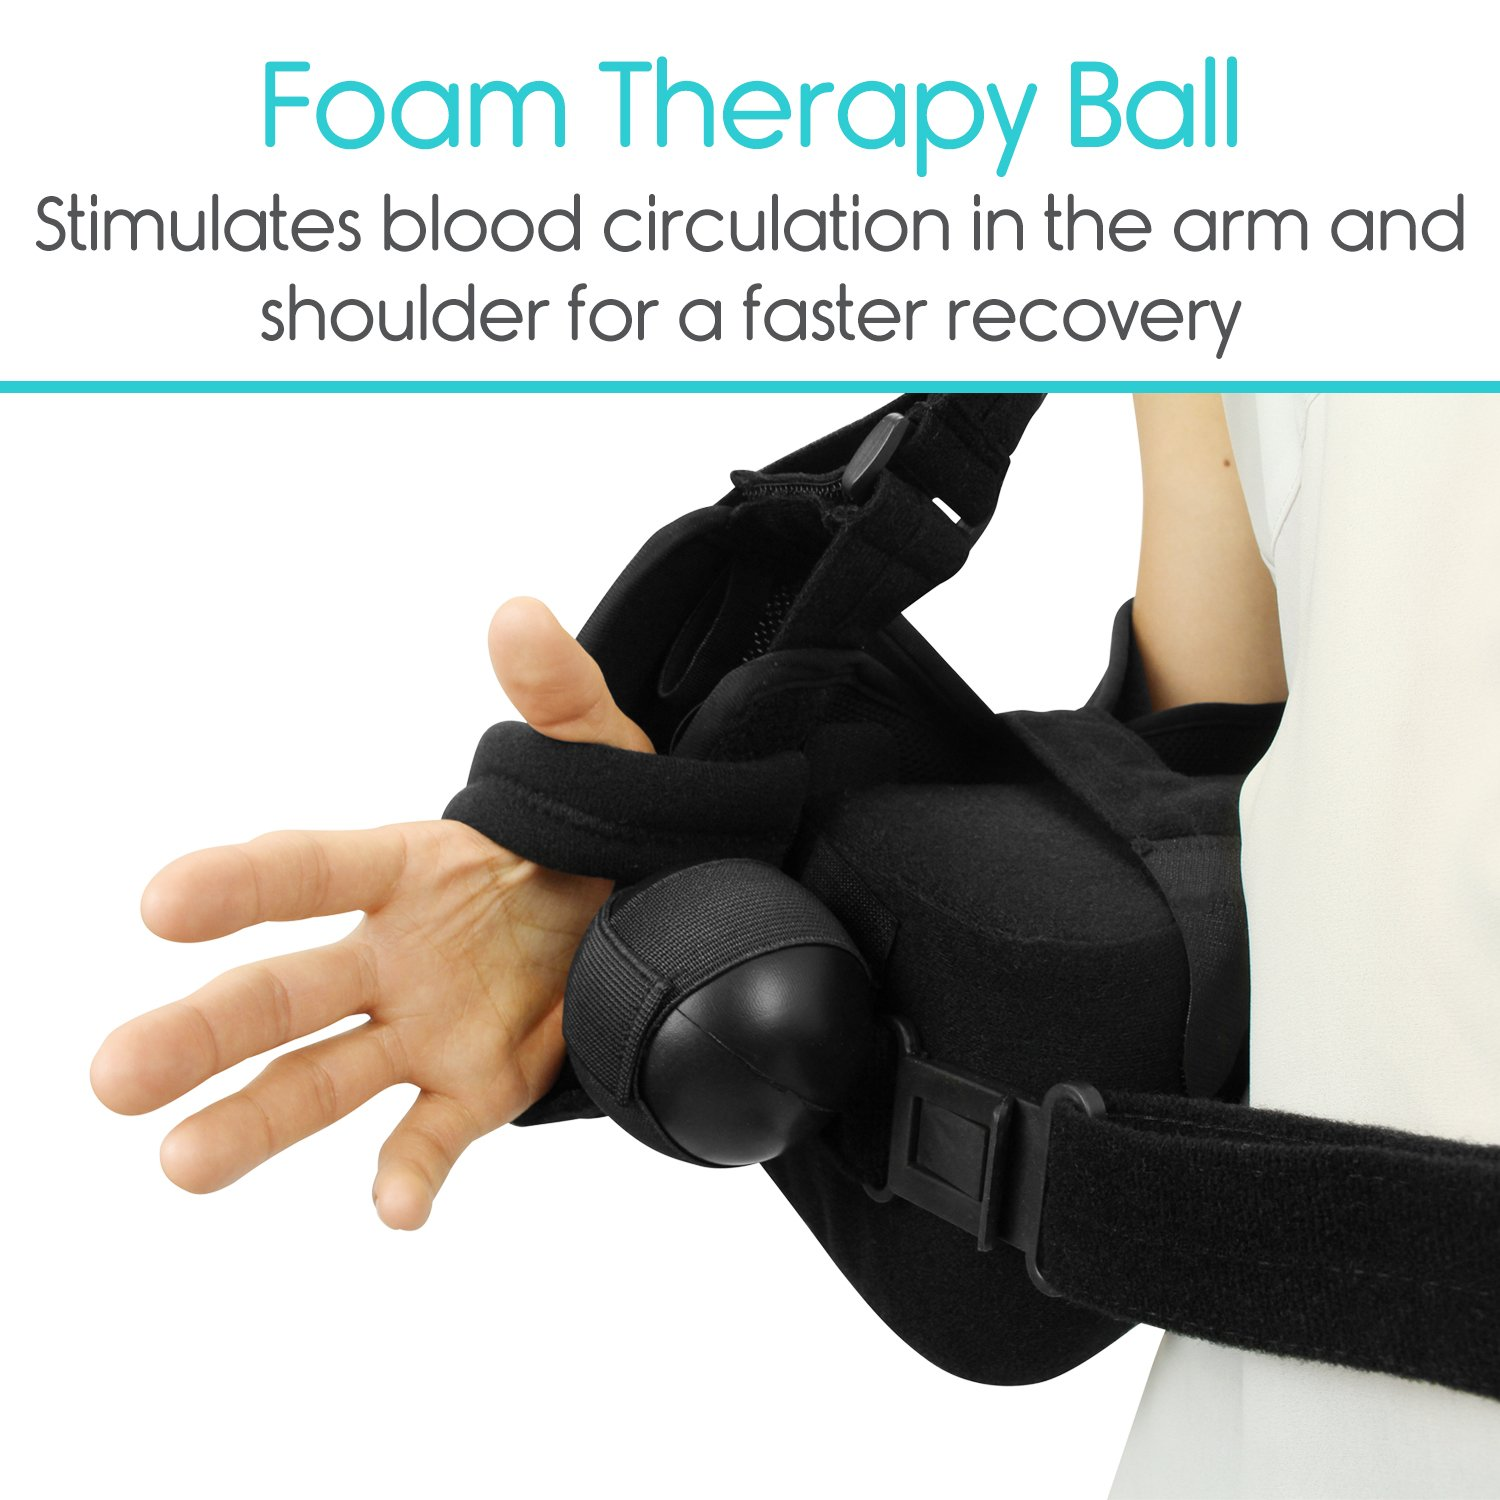 Vive Shoulder Sling - Abduction Immobilizer for Injury Support - Pain Relief Arm Pillow for Rotator Cuff, Sublexion, Surgery, Dislocated, Broken Arm - Brace Includes Pocket Strap, Stress Ball, Wedge by VIVE (Image #3)